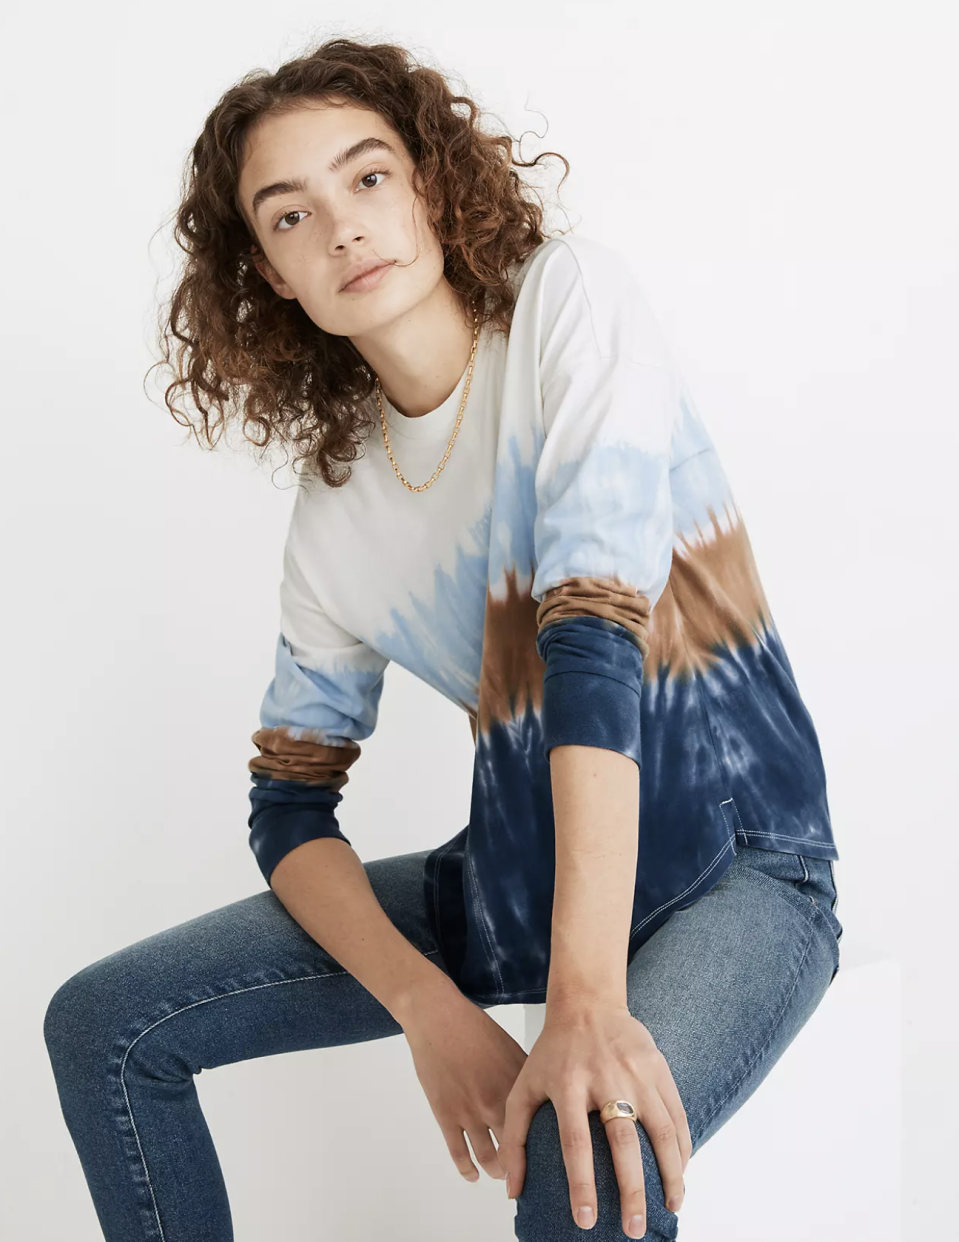 """<p><strong>Madewell</strong></p><p>madewell.com</p><p><strong>$55.00</strong></p><p><a href=""""https://go.redirectingat.com?id=74968X1596630&url=https%3A%2F%2Fwww.madewell.com%2Ftie-dye-newville-tee-MC228.html&sref=https%3A%2F%2Fwww.seventeen.com%2Ffashion%2Fg34644503%2Fmadewell-black-friday-sales-2020%2F"""" rel=""""nofollow noopener"""" target=""""_blank"""" data-ylk=""""slk:Shop Now"""" class=""""link rapid-noclick-resp"""">Shop Now</a></p><p>Do I need more tie-dye? No. Do I <em>want </em>more tie-dye? Absolutely, yes.</p>"""